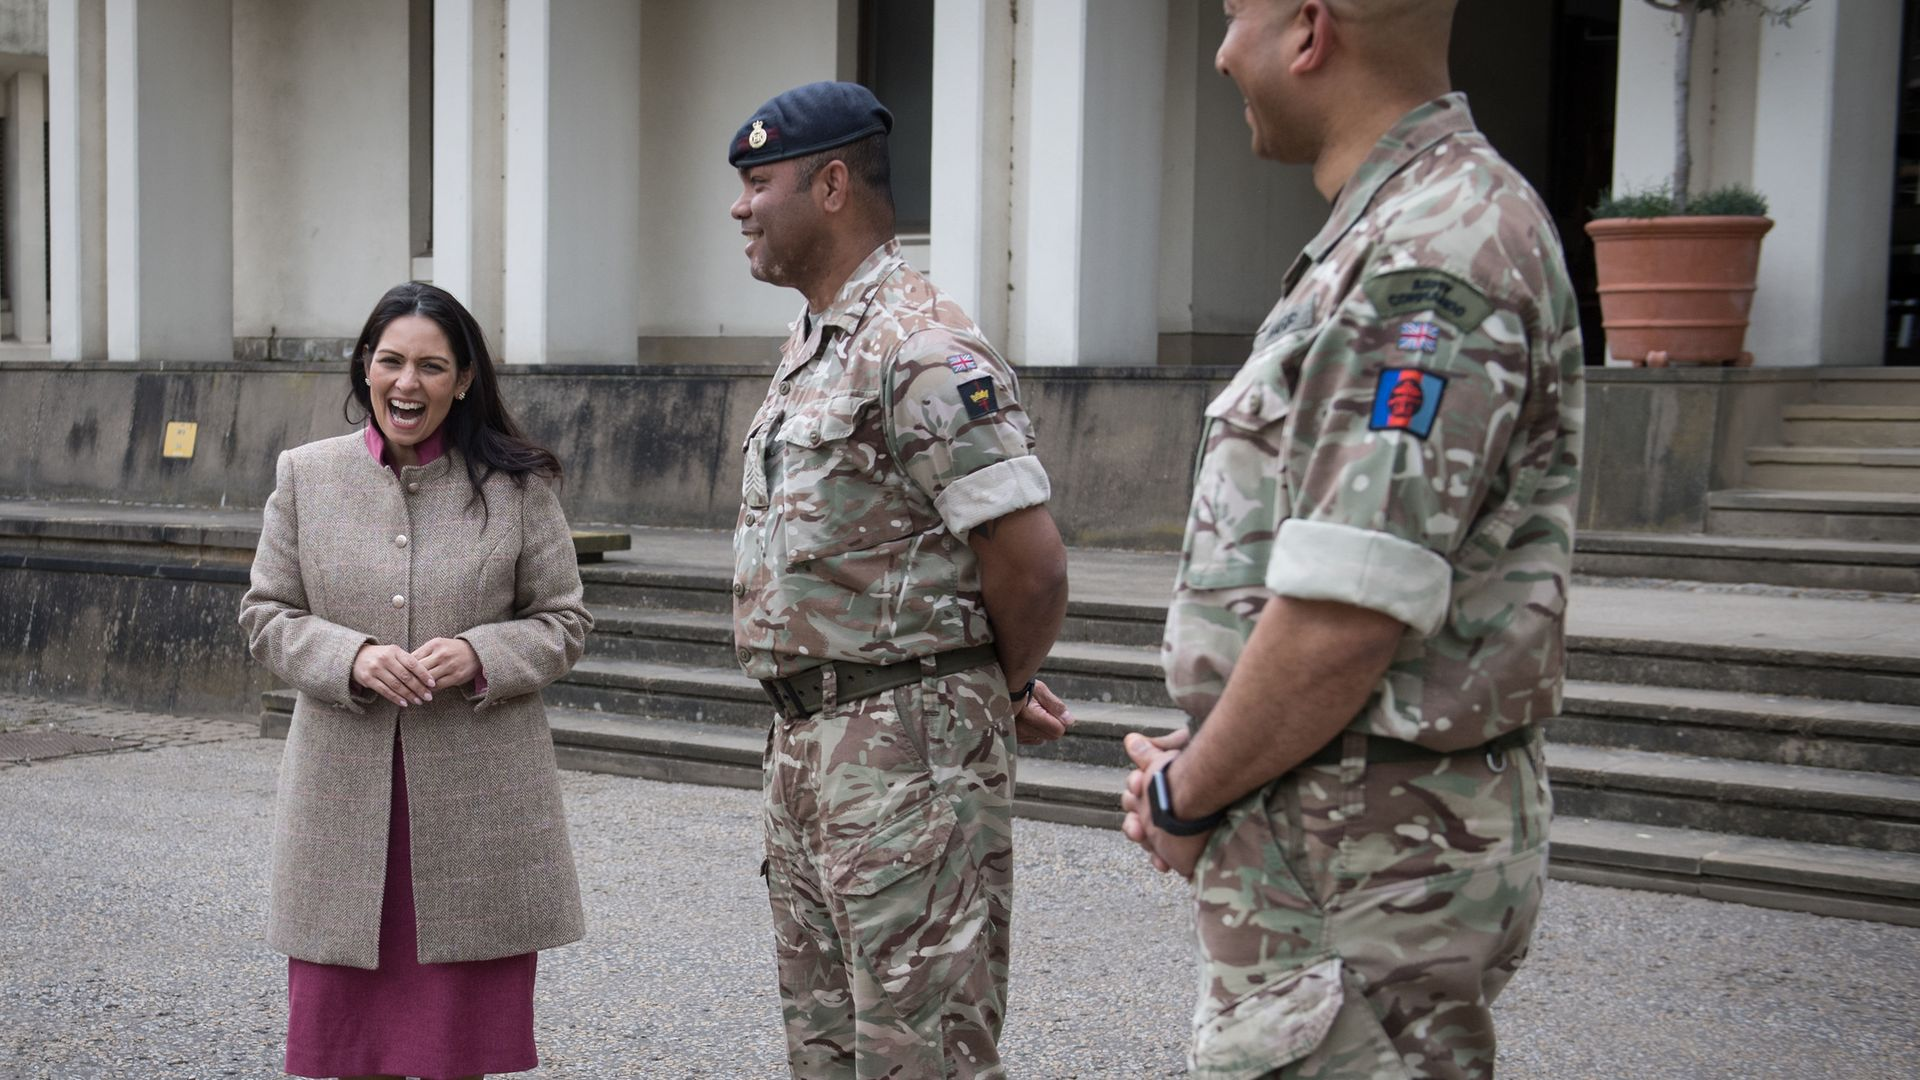 Home secretary Priti Patel during a visit to Wellington Barracks to meet service personnel - Credit: PA